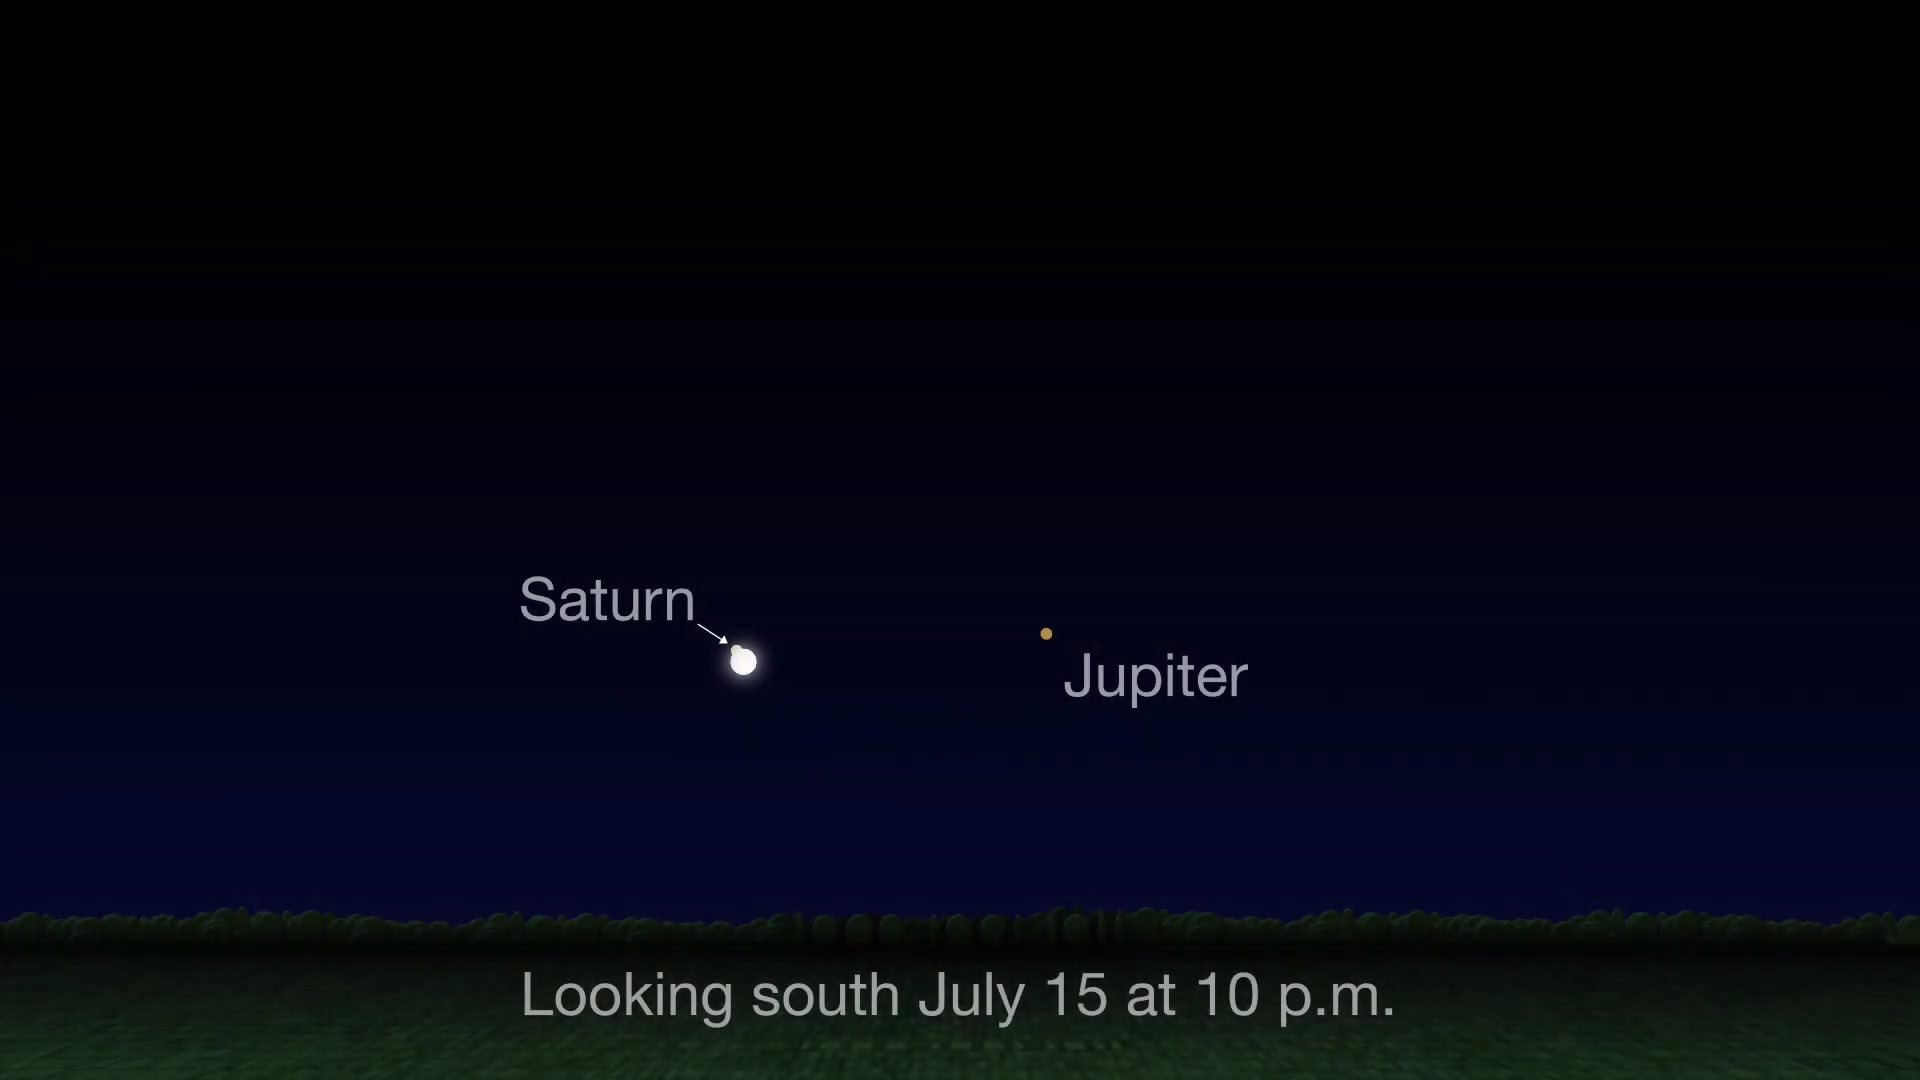 Chart showing the Moon and Jupiter near the Moon on July 15.